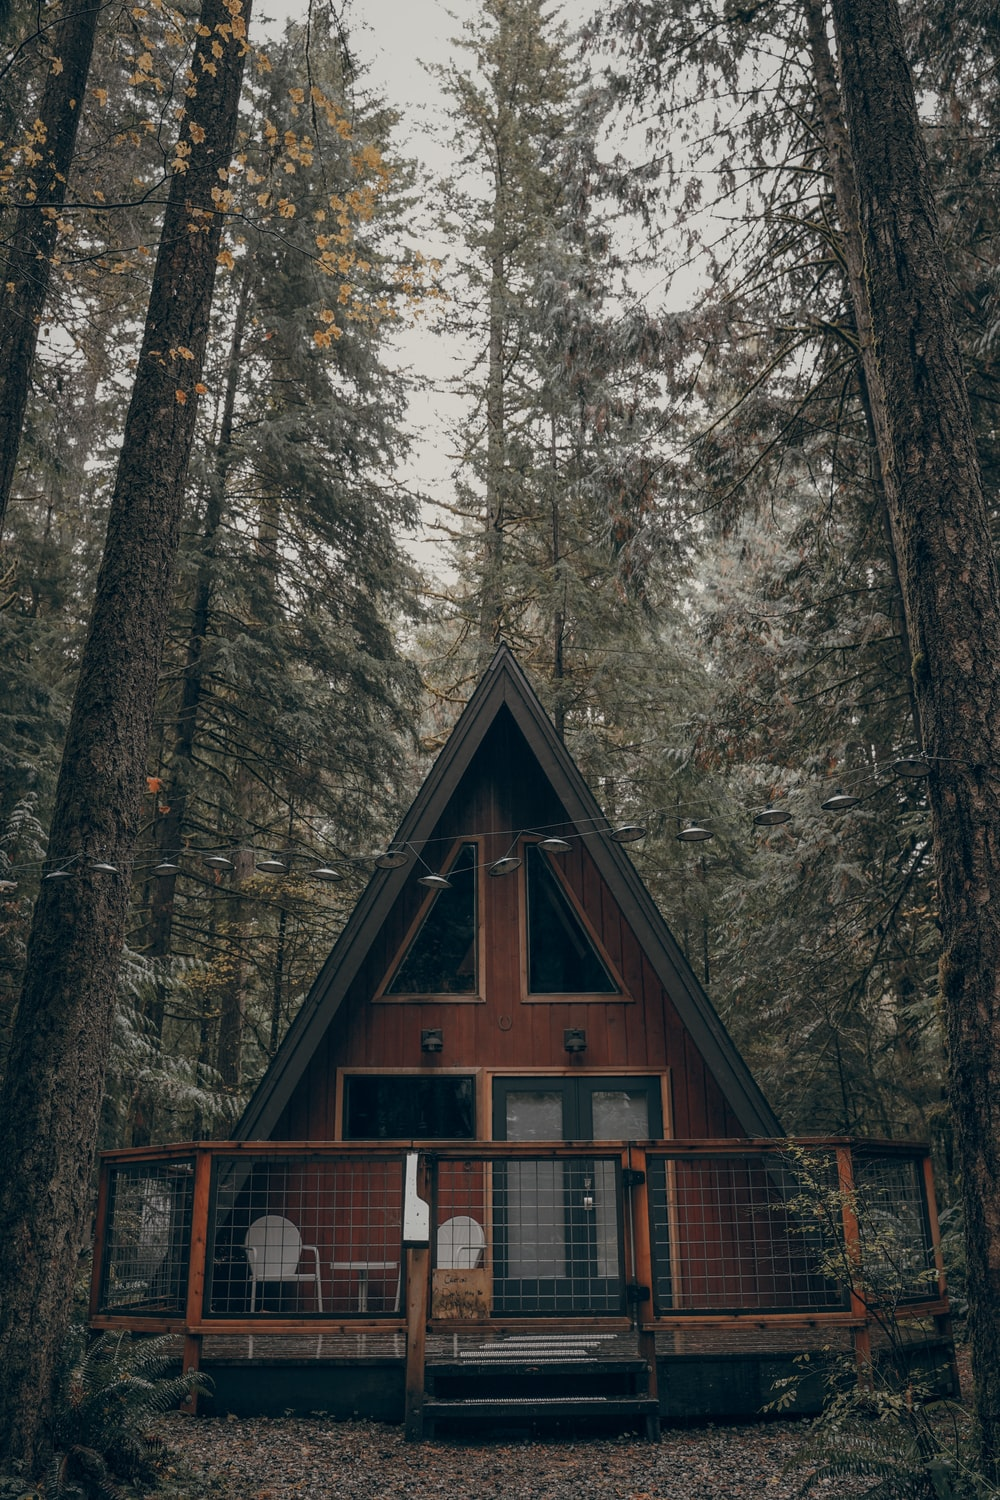 brown wooden cabin surrounded by trees